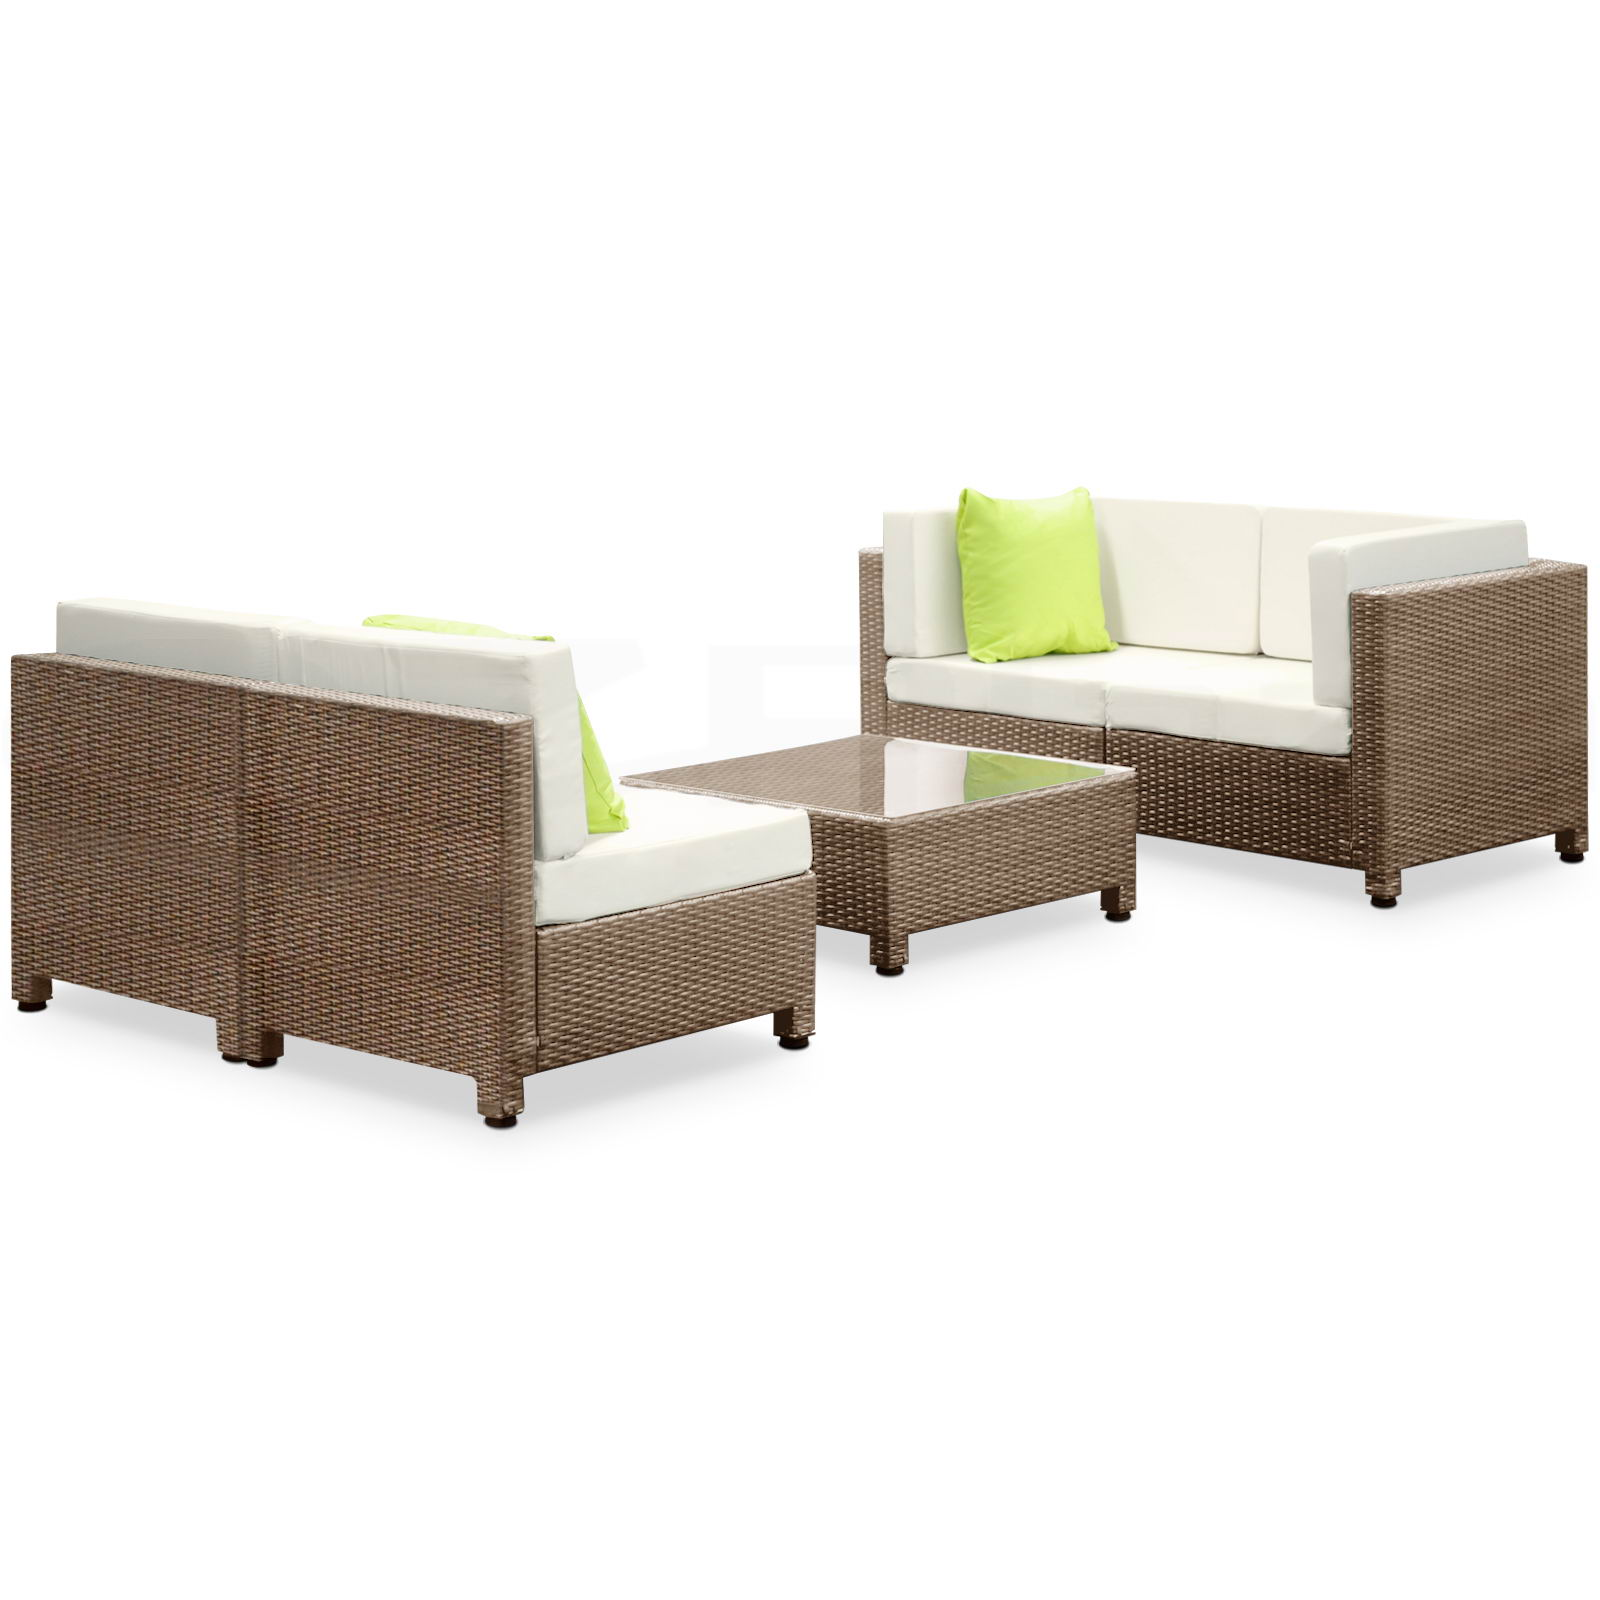 Free shipping 5pcs outdoor furniture brown pe wicker for Lounge garden furniture sets